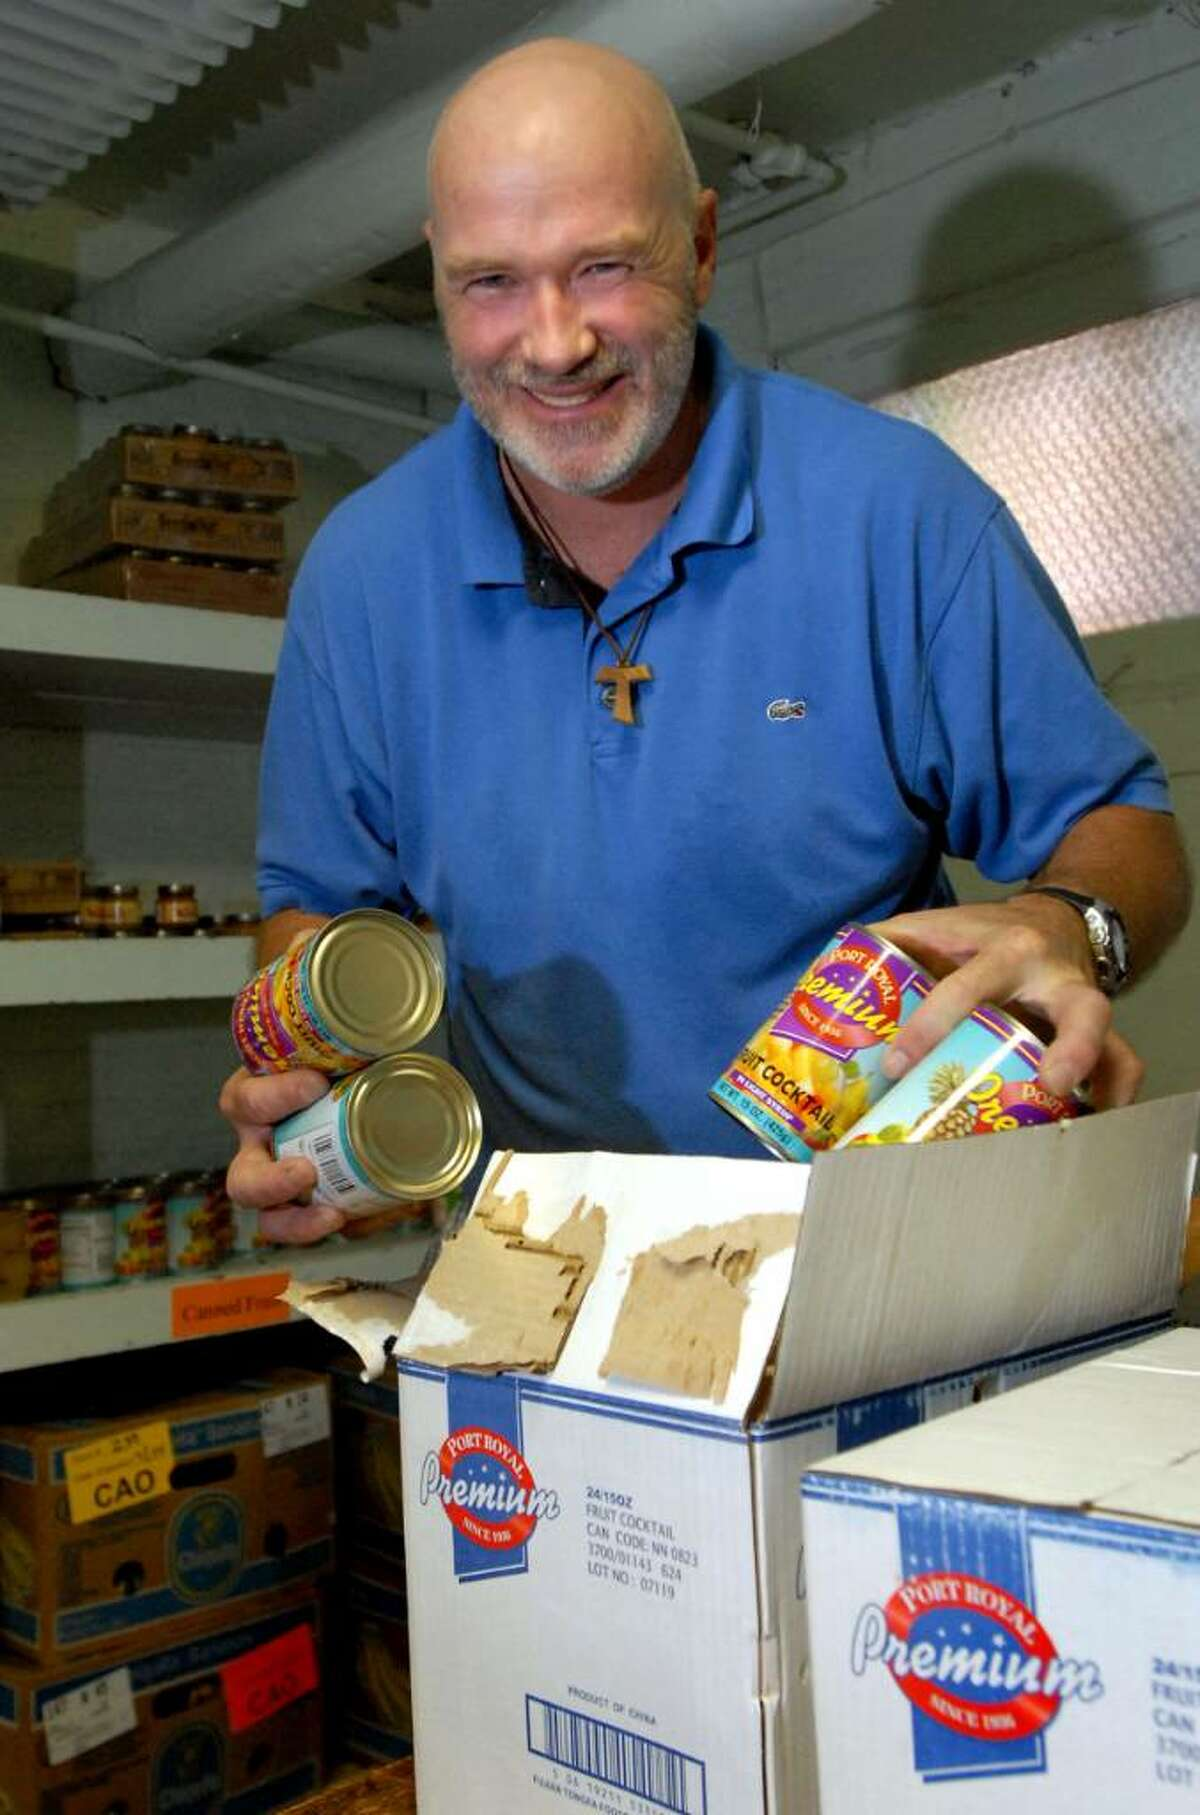 Friar Greg Spuhler, who has been reassigned by his Franciscan order to North Carolina, is concerned about feeding the hungry at a soup kitchen and food pantry as the Albany parish is closed.